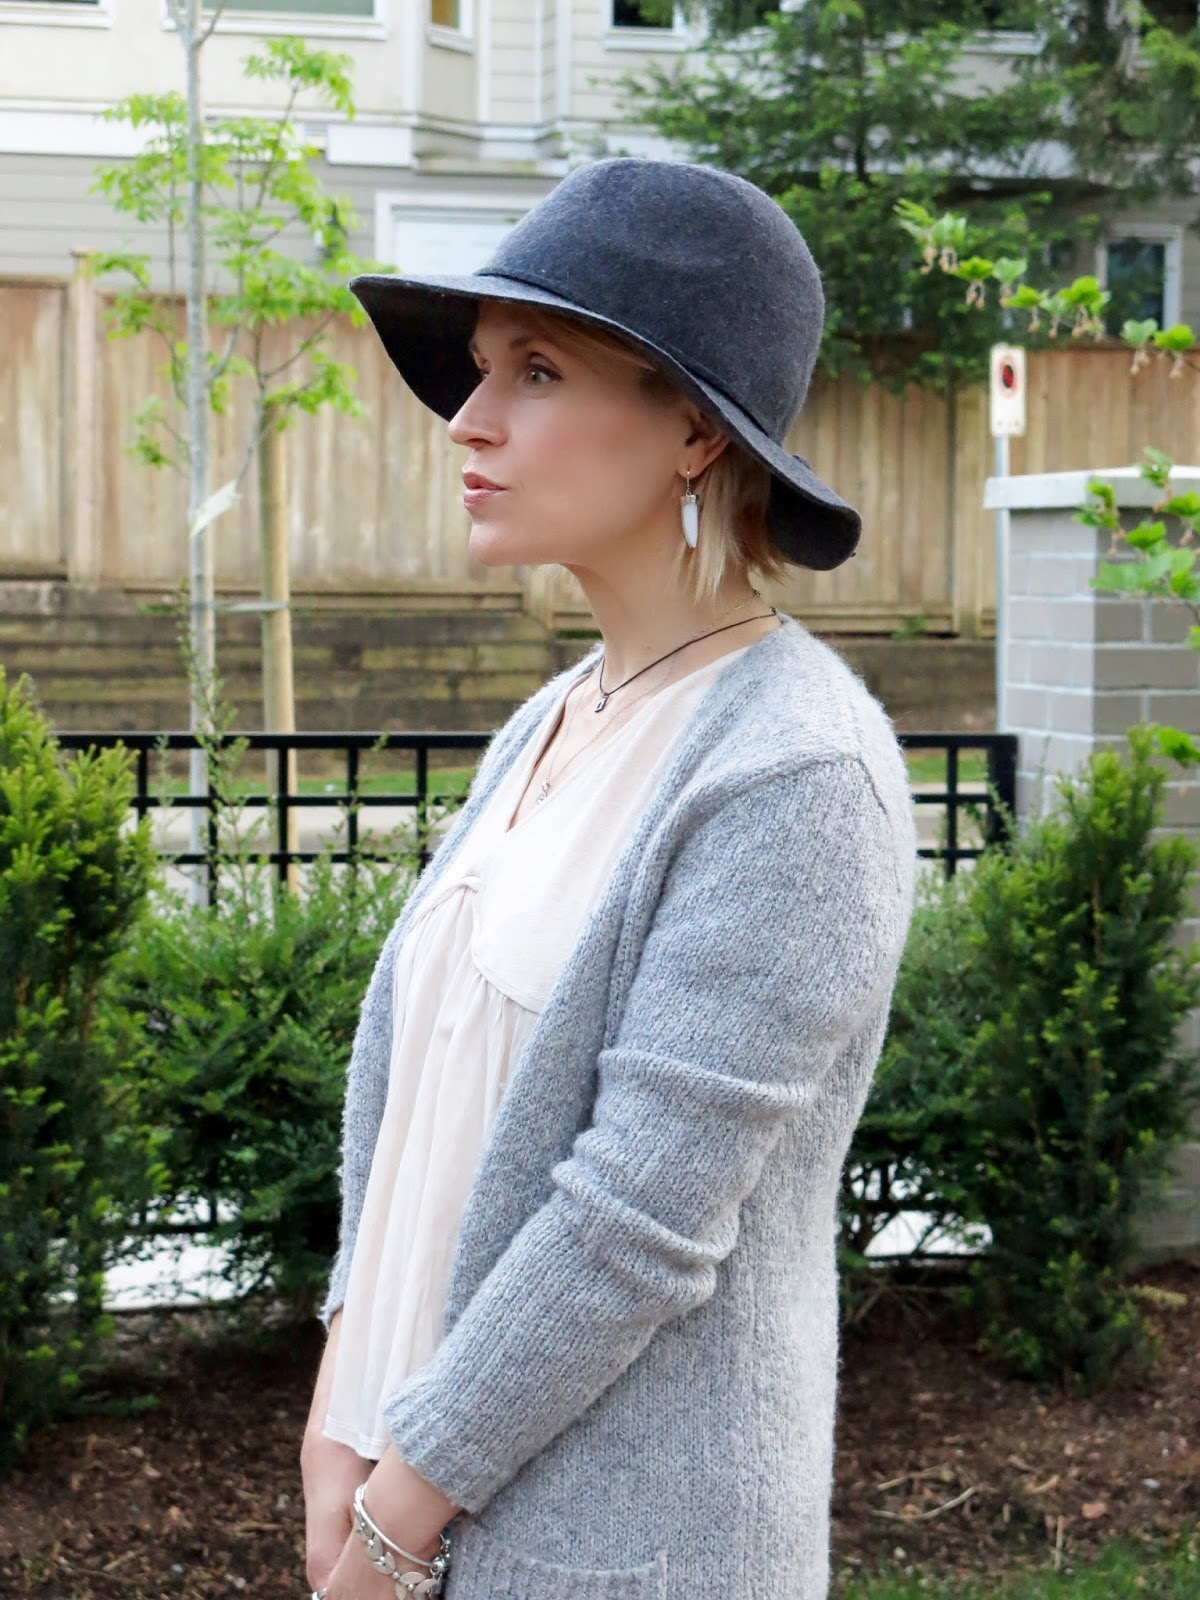 Zara top, long cardigan, floppy hat